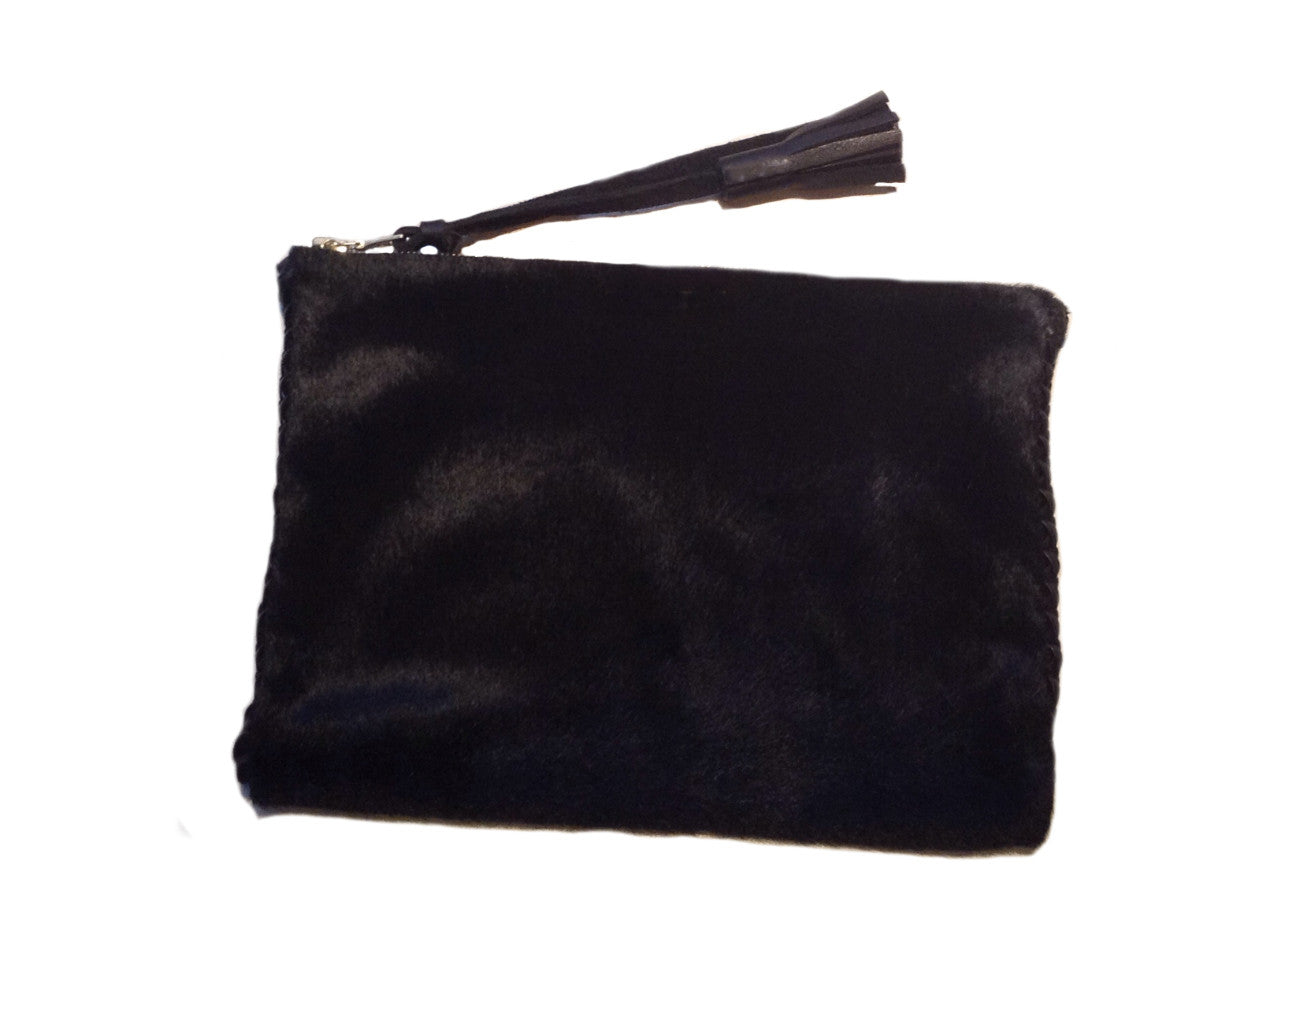 Black Pony Cow Fur Hair Leather Braided Pouch Wendy Nichol Handbag Wallet Designer Handmade in NYC